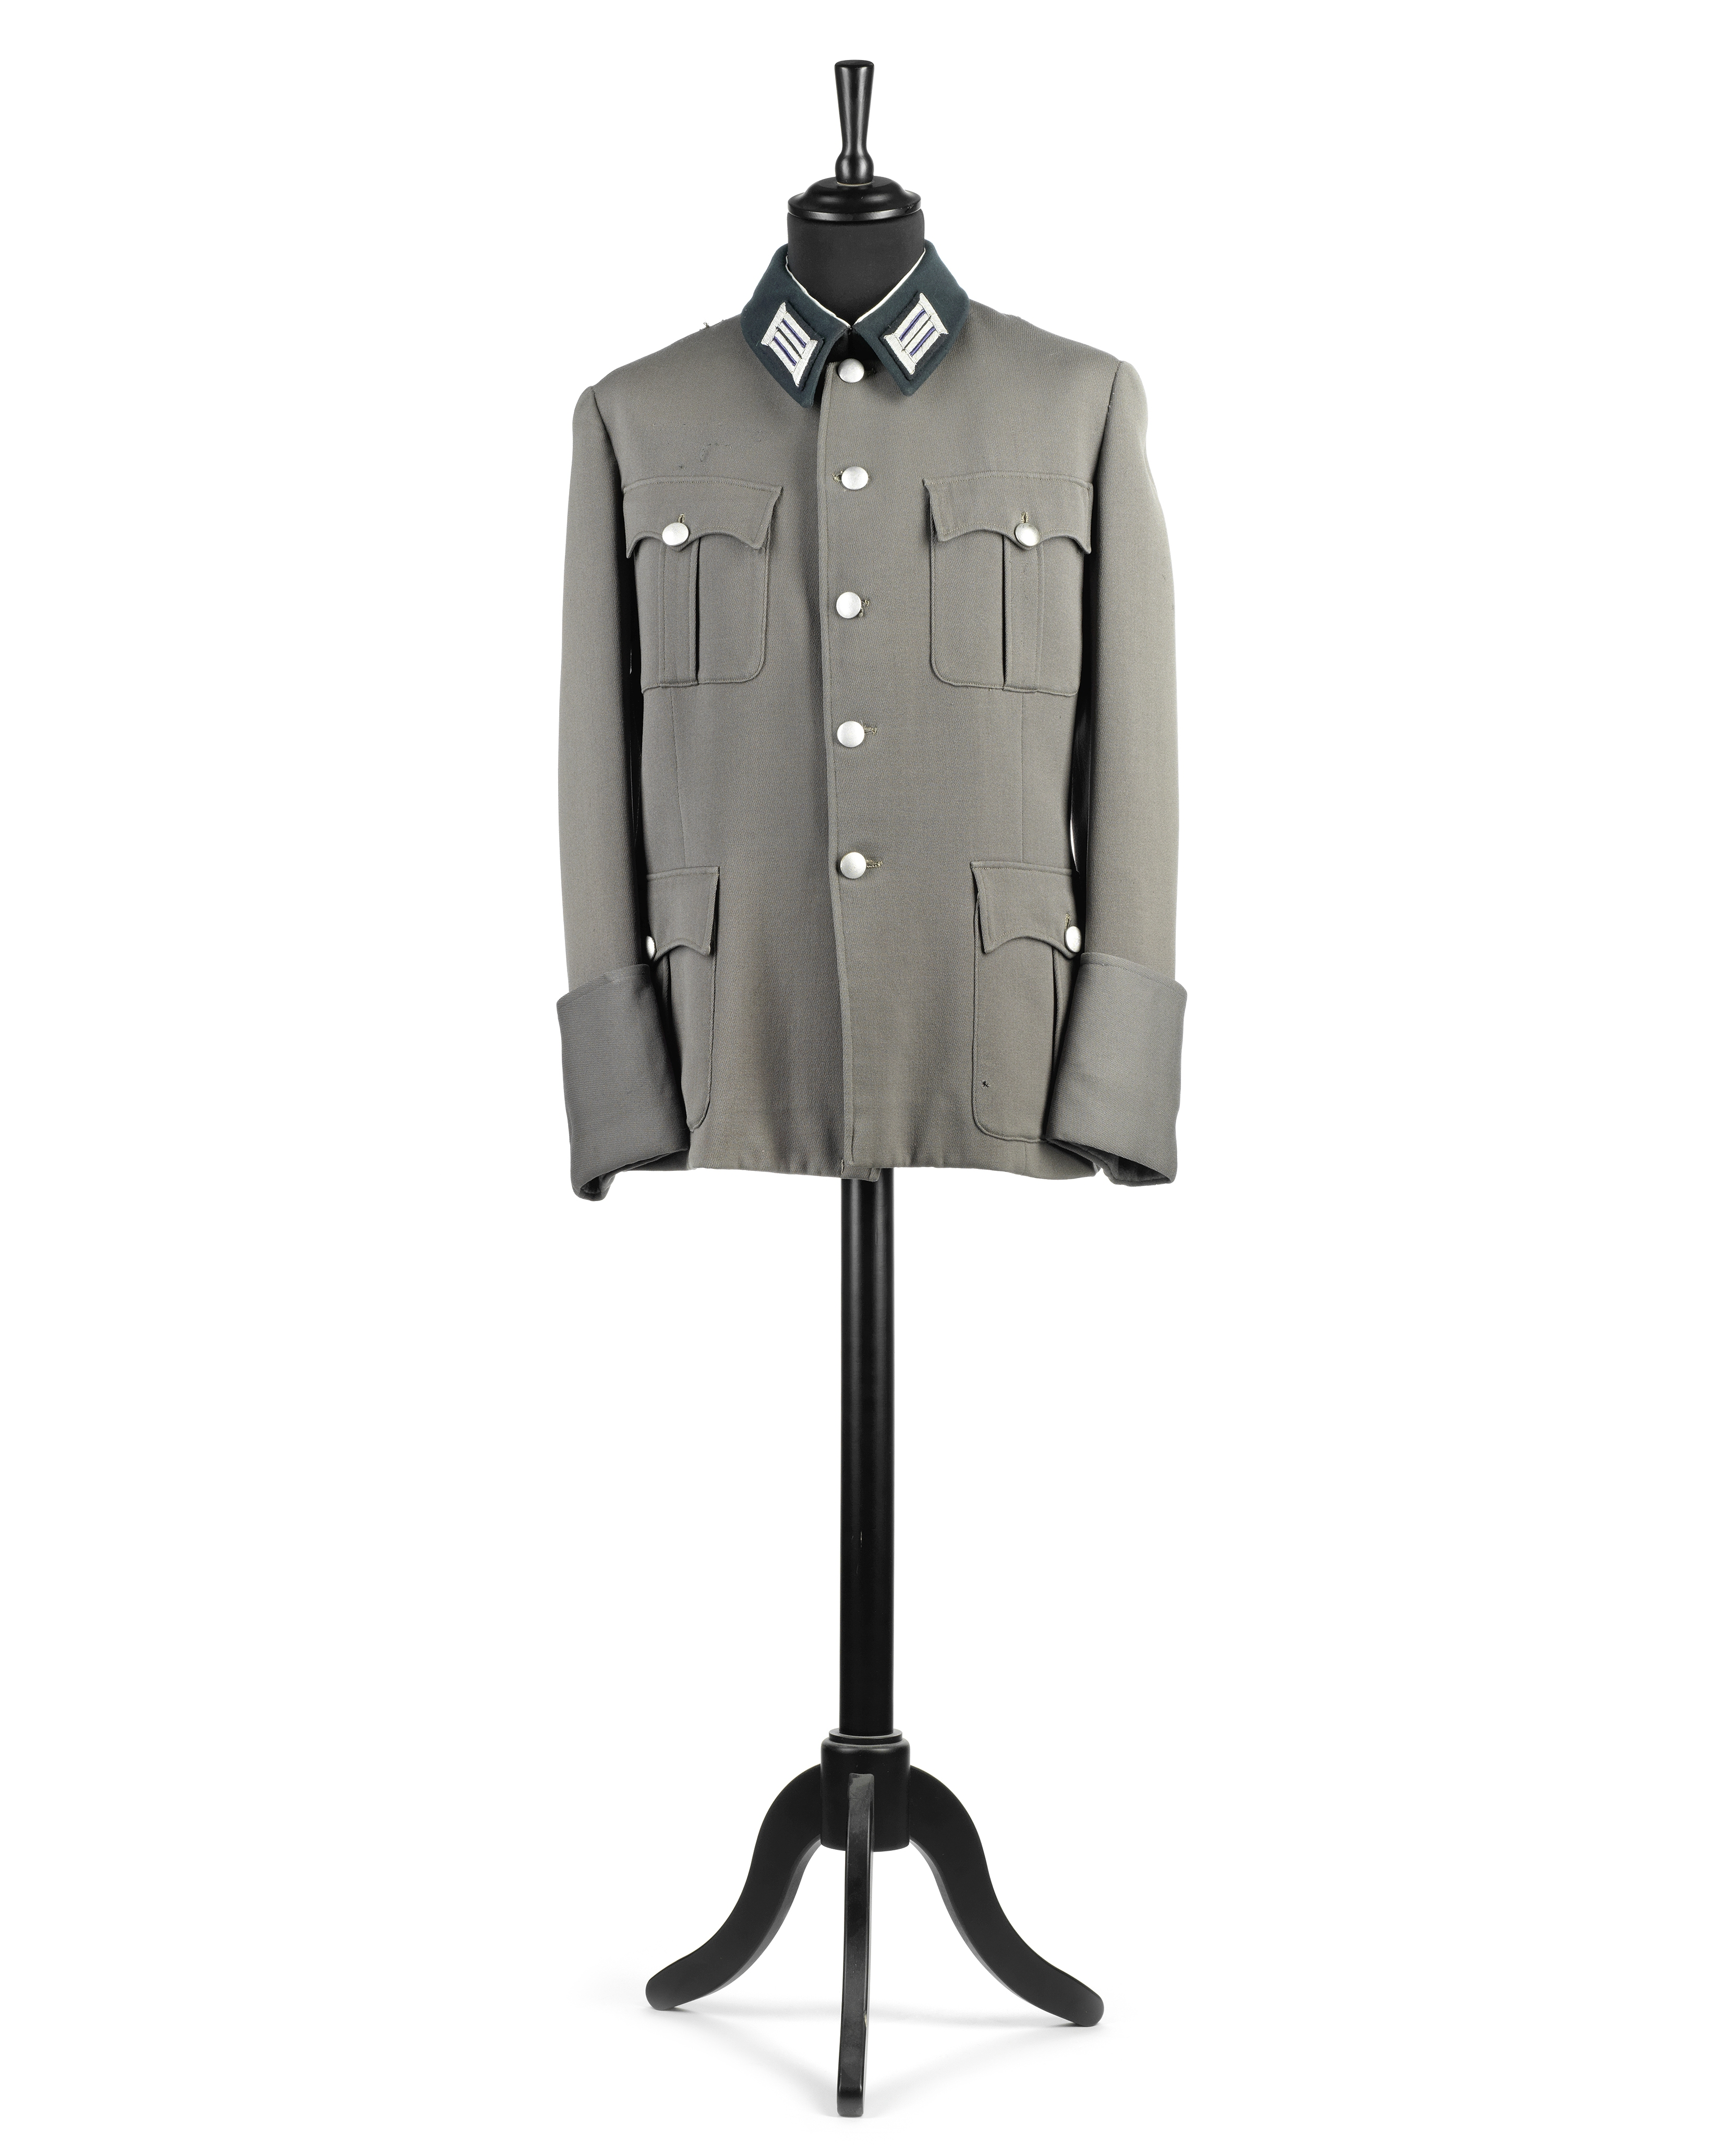 Lot 18 - Where Eagles Dare: Richard Burton's military-style jacket worn for his role as 'Major John Smith'...